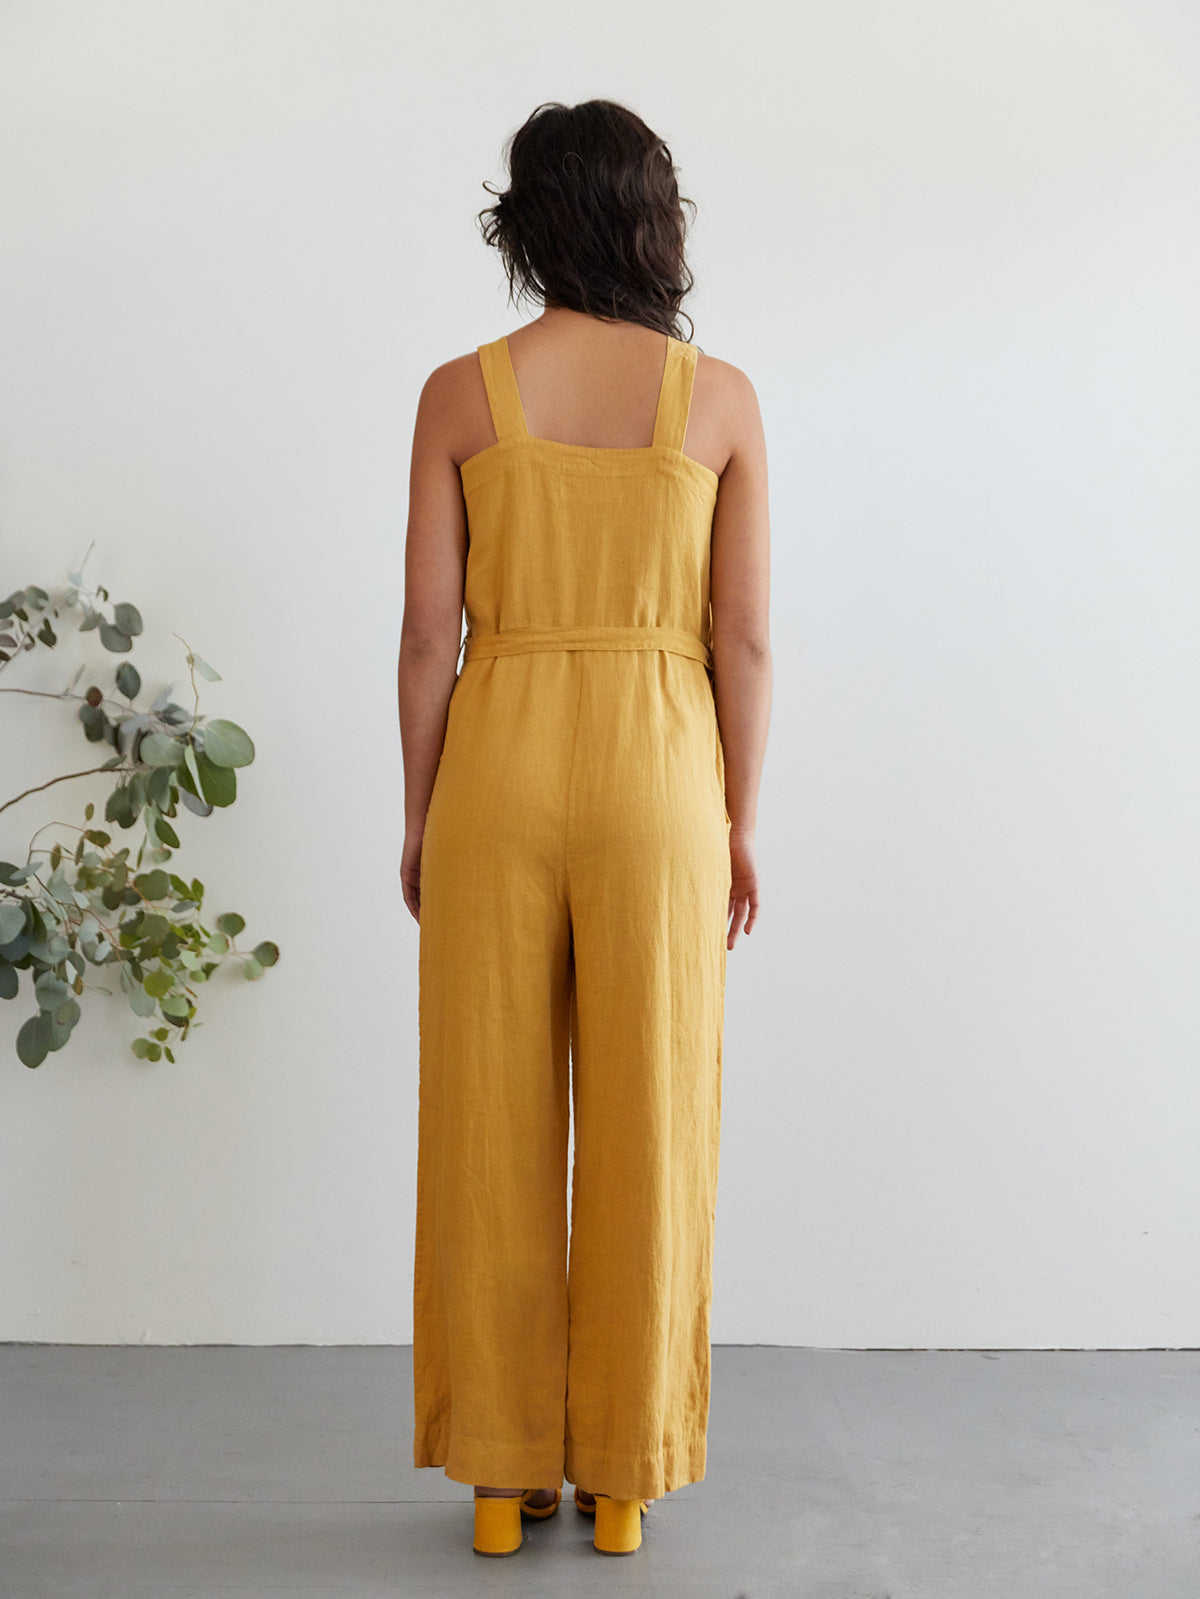 The Orchid Jumpsuit | Assorted ColorsJumpsuits - sugarcandymtn.com